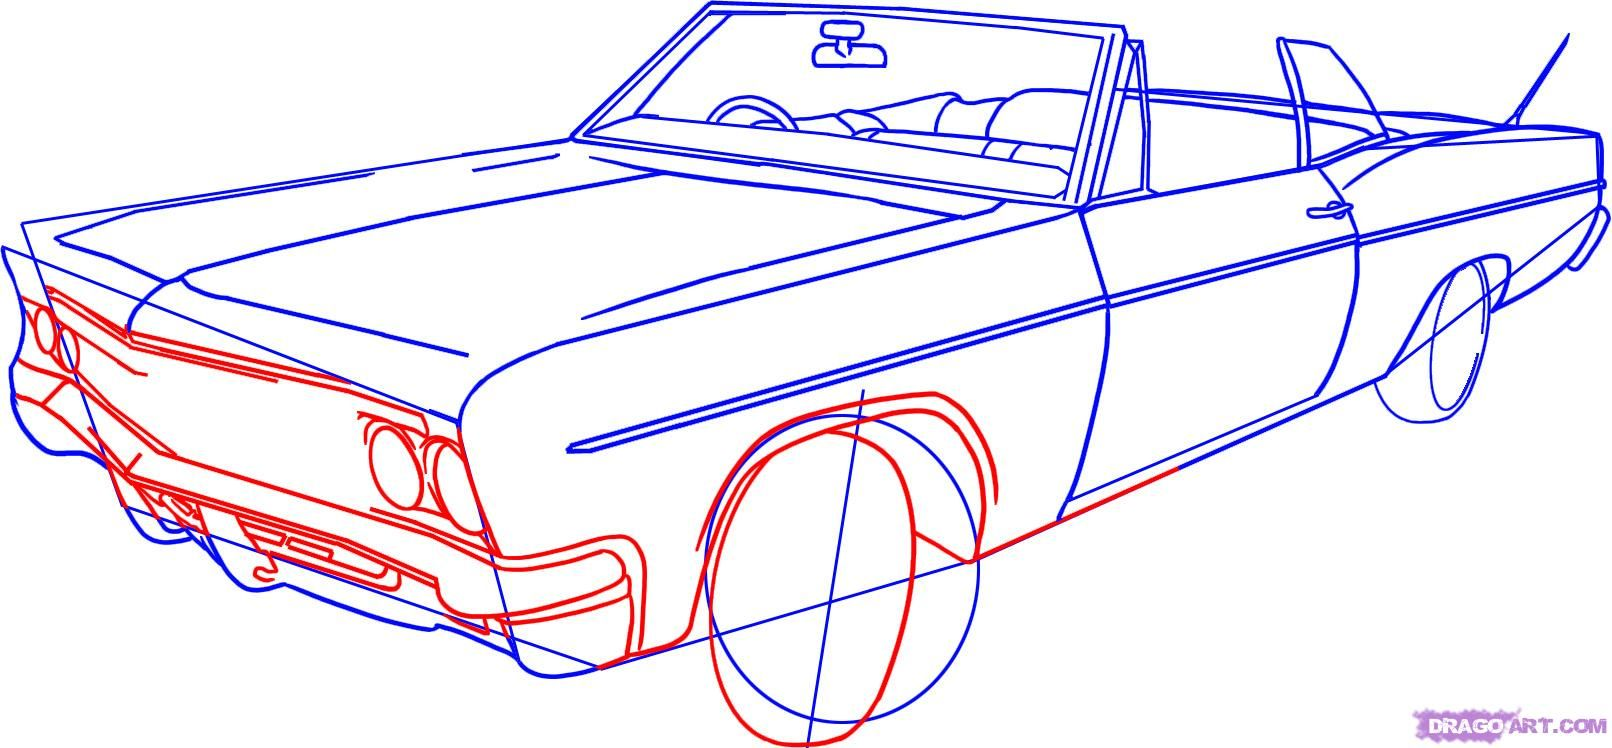 How To Draw A Lowrider Step By Step Cars Draw Cars Online Transportation Free Online Drawing Tutorial Added By D Car Drawings Lowrider Drawings Lowriders